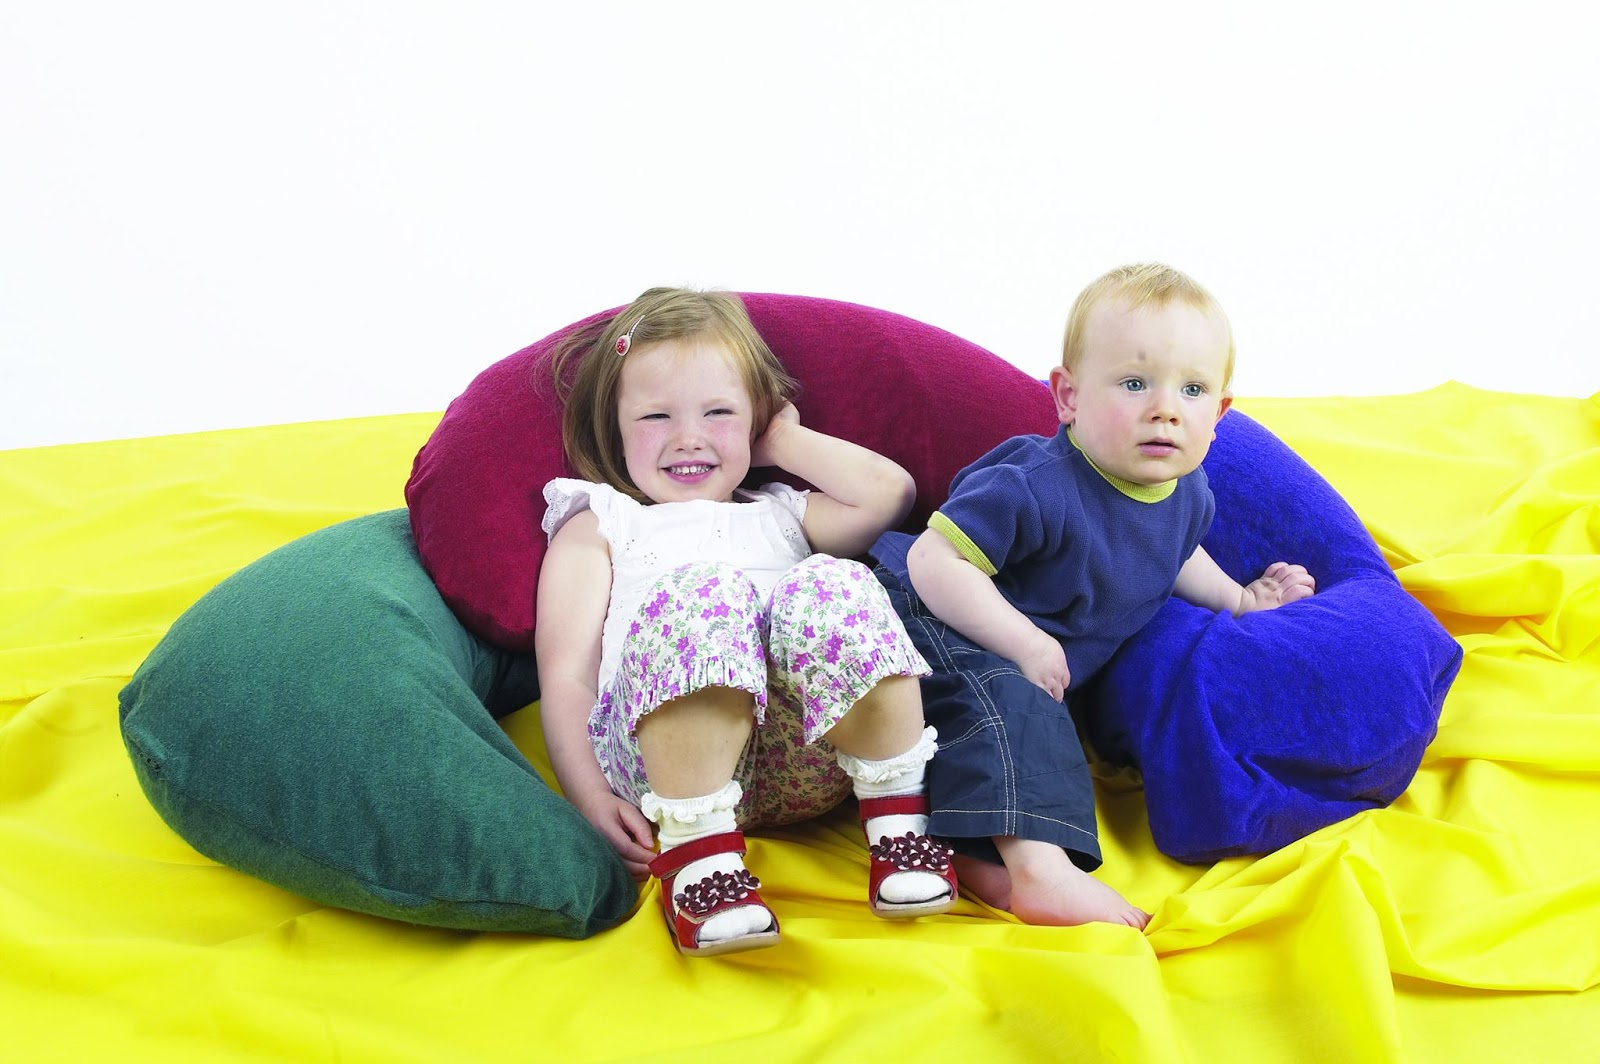 beaneezy beanbags, beanbags, clothing solutions, disabled people, children, kid's beanbags, beanbags for babies, babies furniture